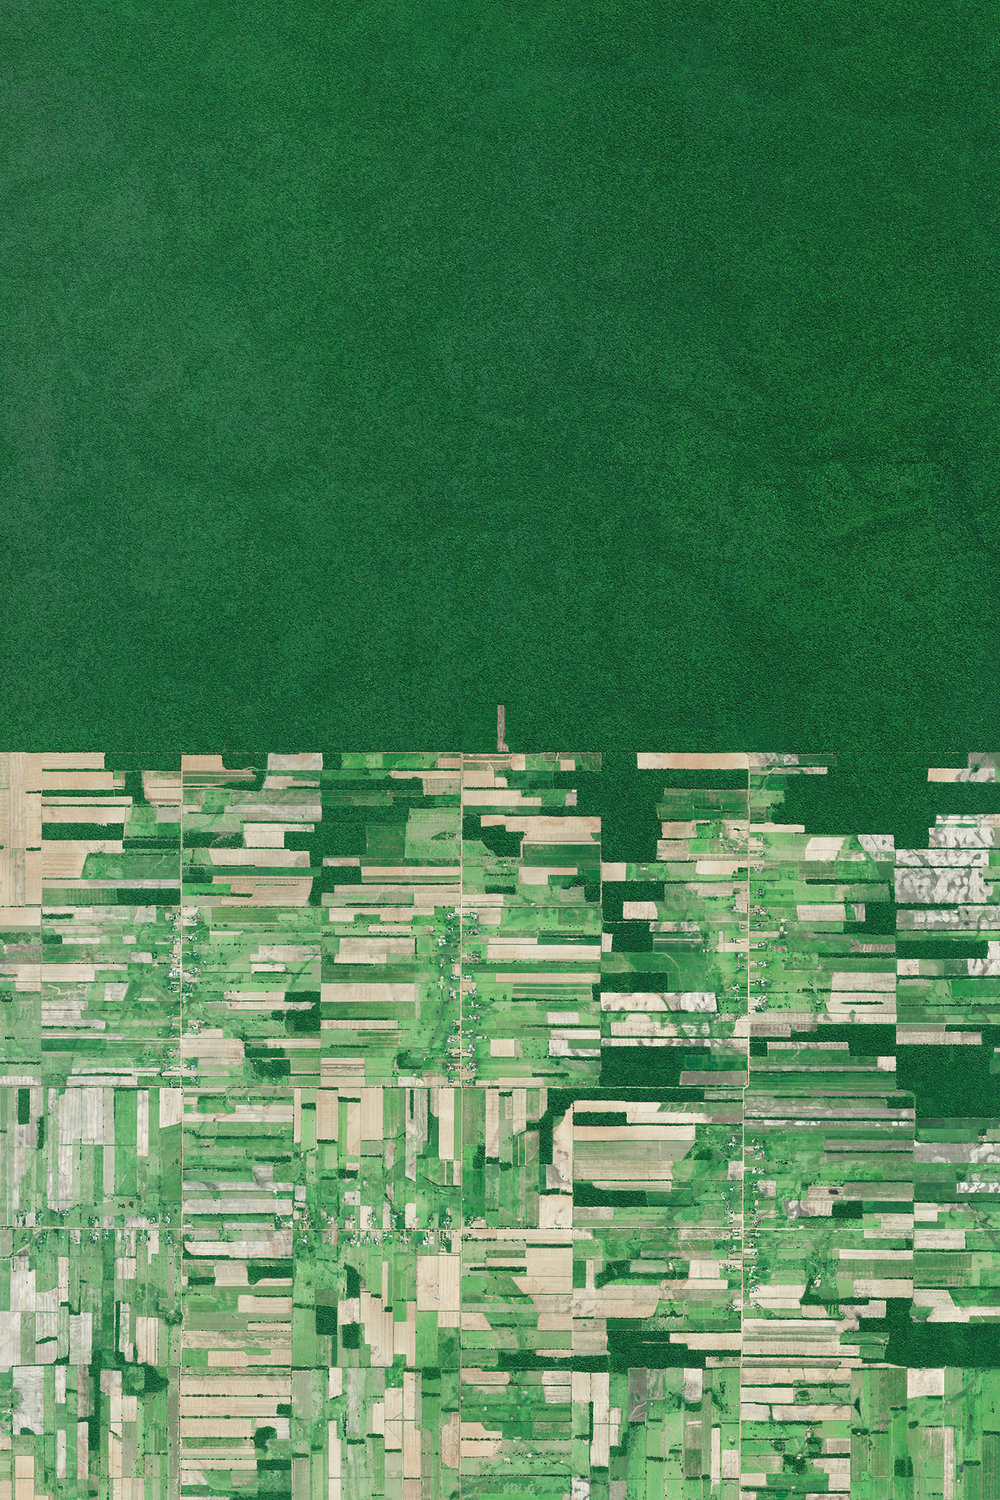 "Deforestation in Bolivia has primarily been driven by the expansion of mechanized agriculture and cattle ranching. It is seen here in Santa Cruz, immediately adjacent to untouched tracts of forest. While tree-clearing rates are now relatively stable at about 200,000 hectares (494,000 acres) a year, it is estimated that Bolivia lost 1,820,000 hectares (4.5 million acres) of forests from 2000 to 2010. Since today is Arbor Day, we hope this Overview will inspire you to plant a tree and help preserve the natural beauty of our one and only home.  17°23'15.7""S, 60°33'43.6""W  Source imagery: DigitalGlobe"